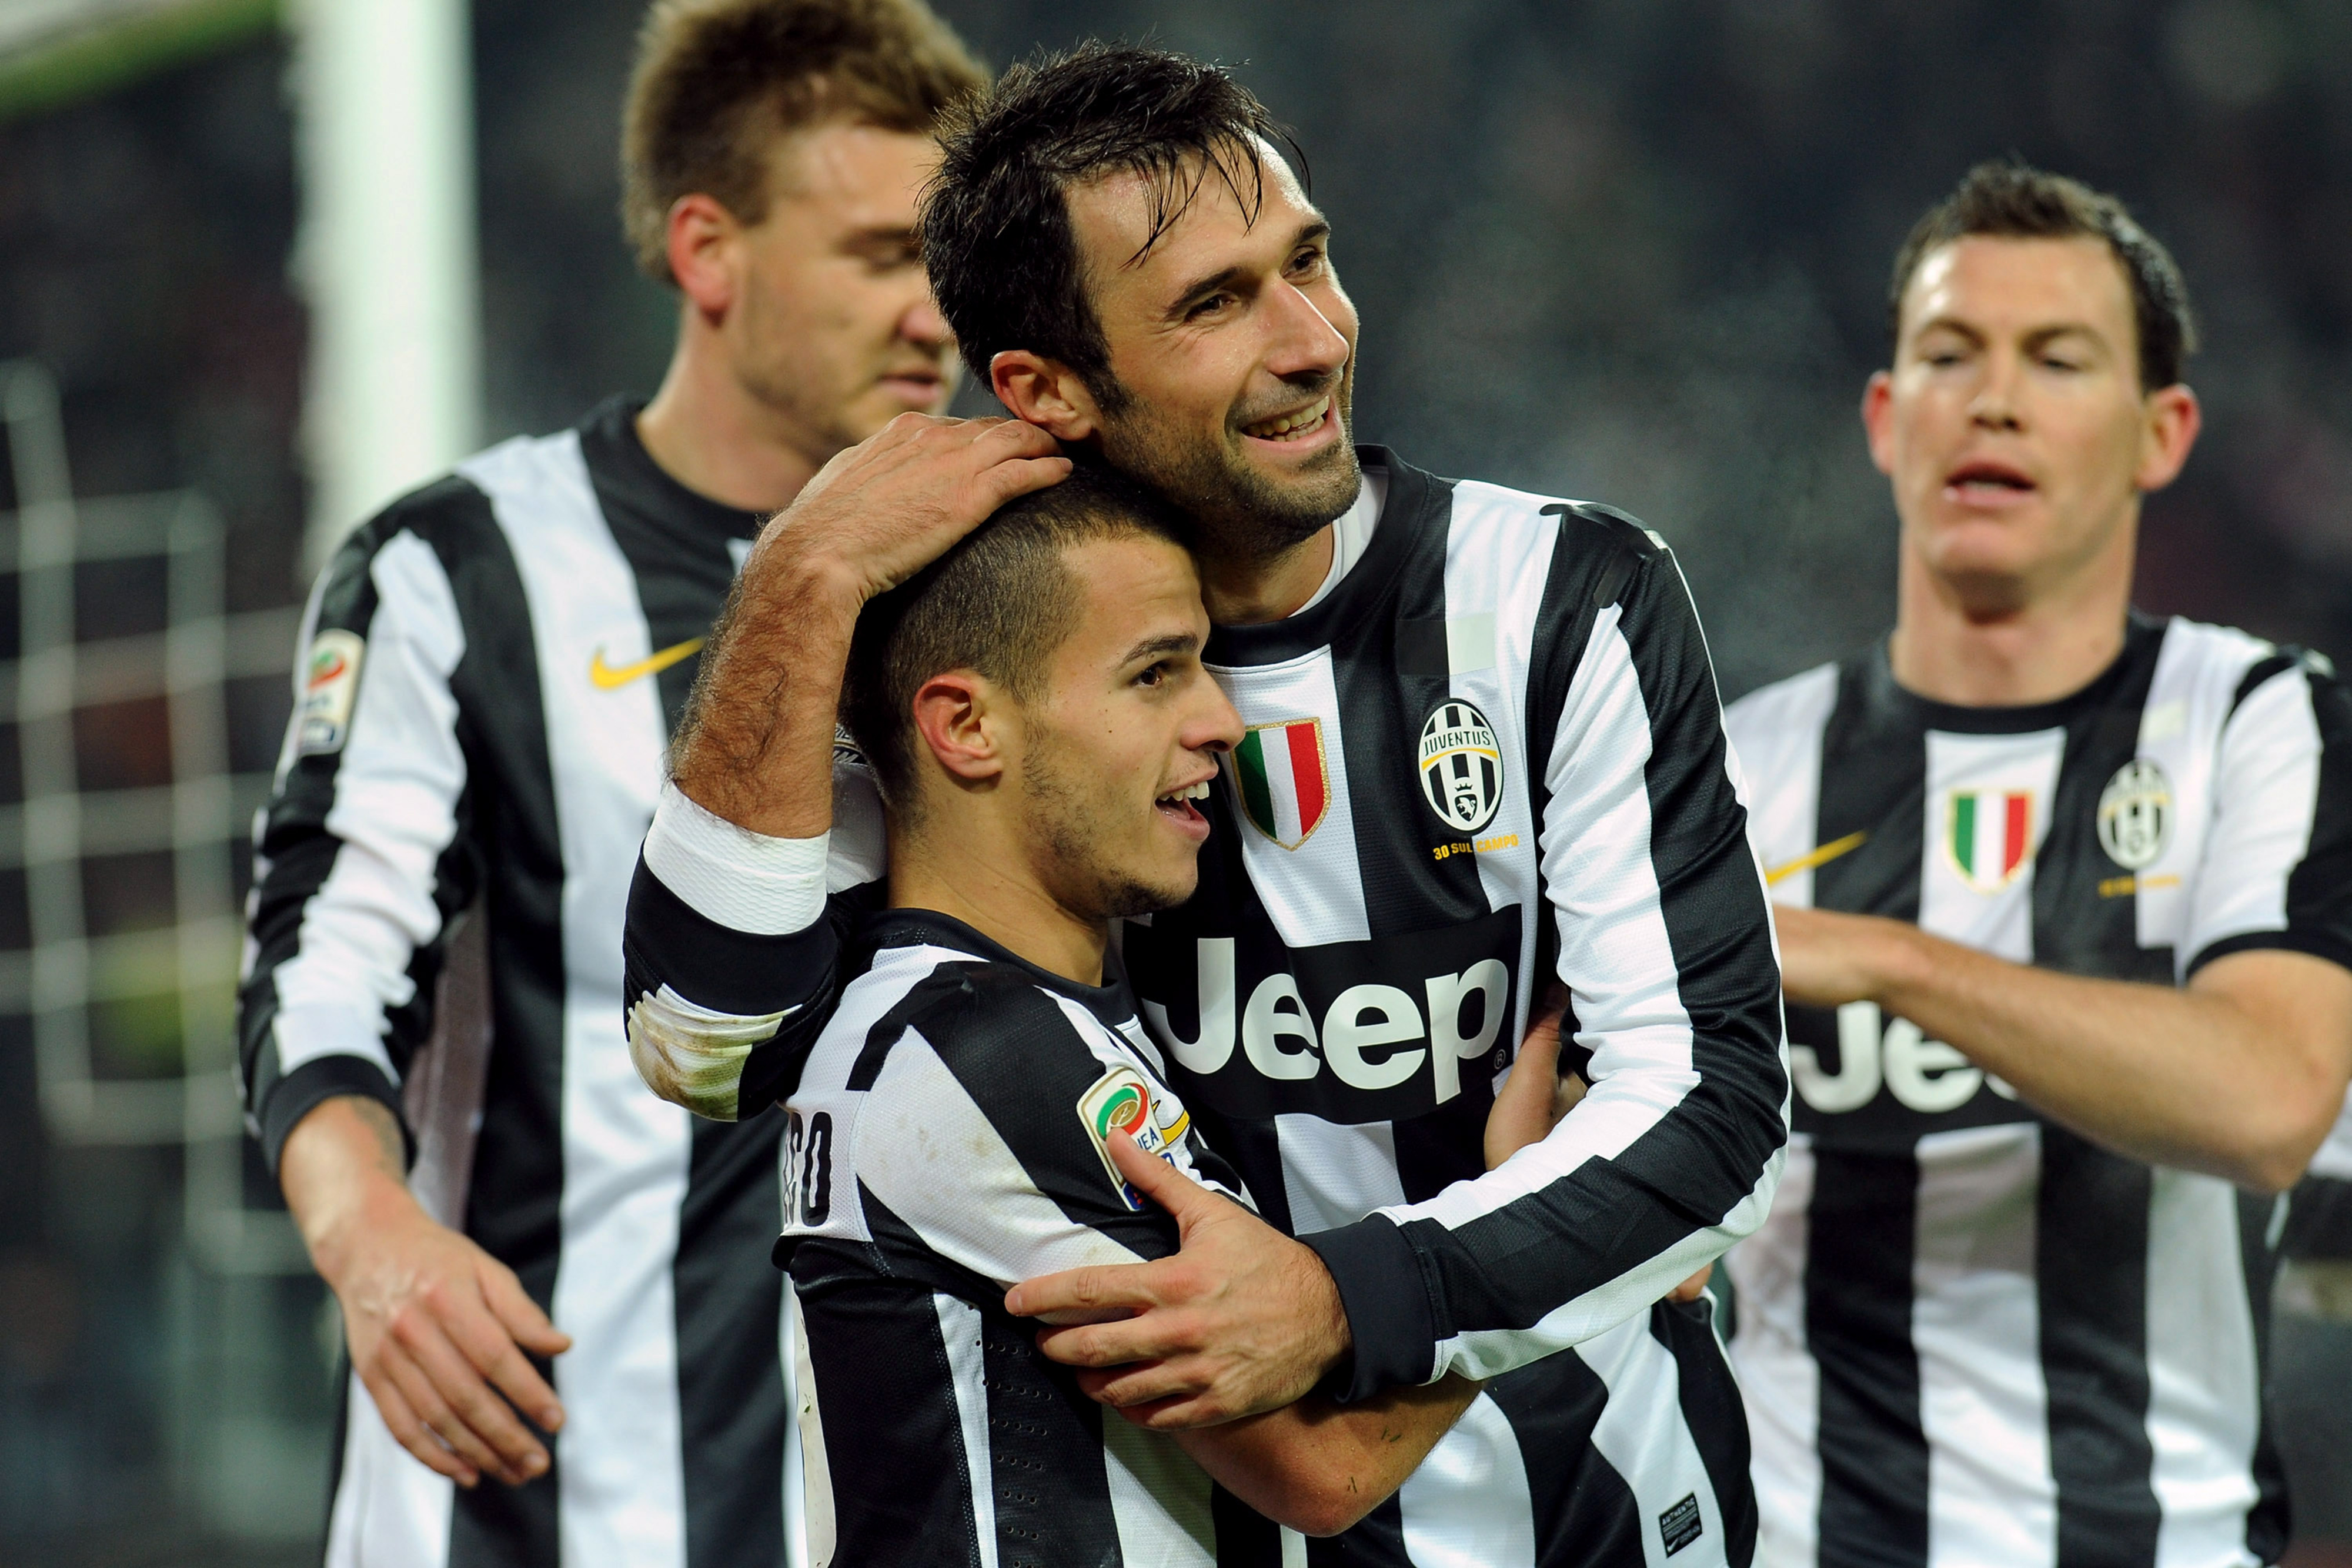 I managed to get Vucinic, Gio, and Bendtner in one picture. You're welcome.